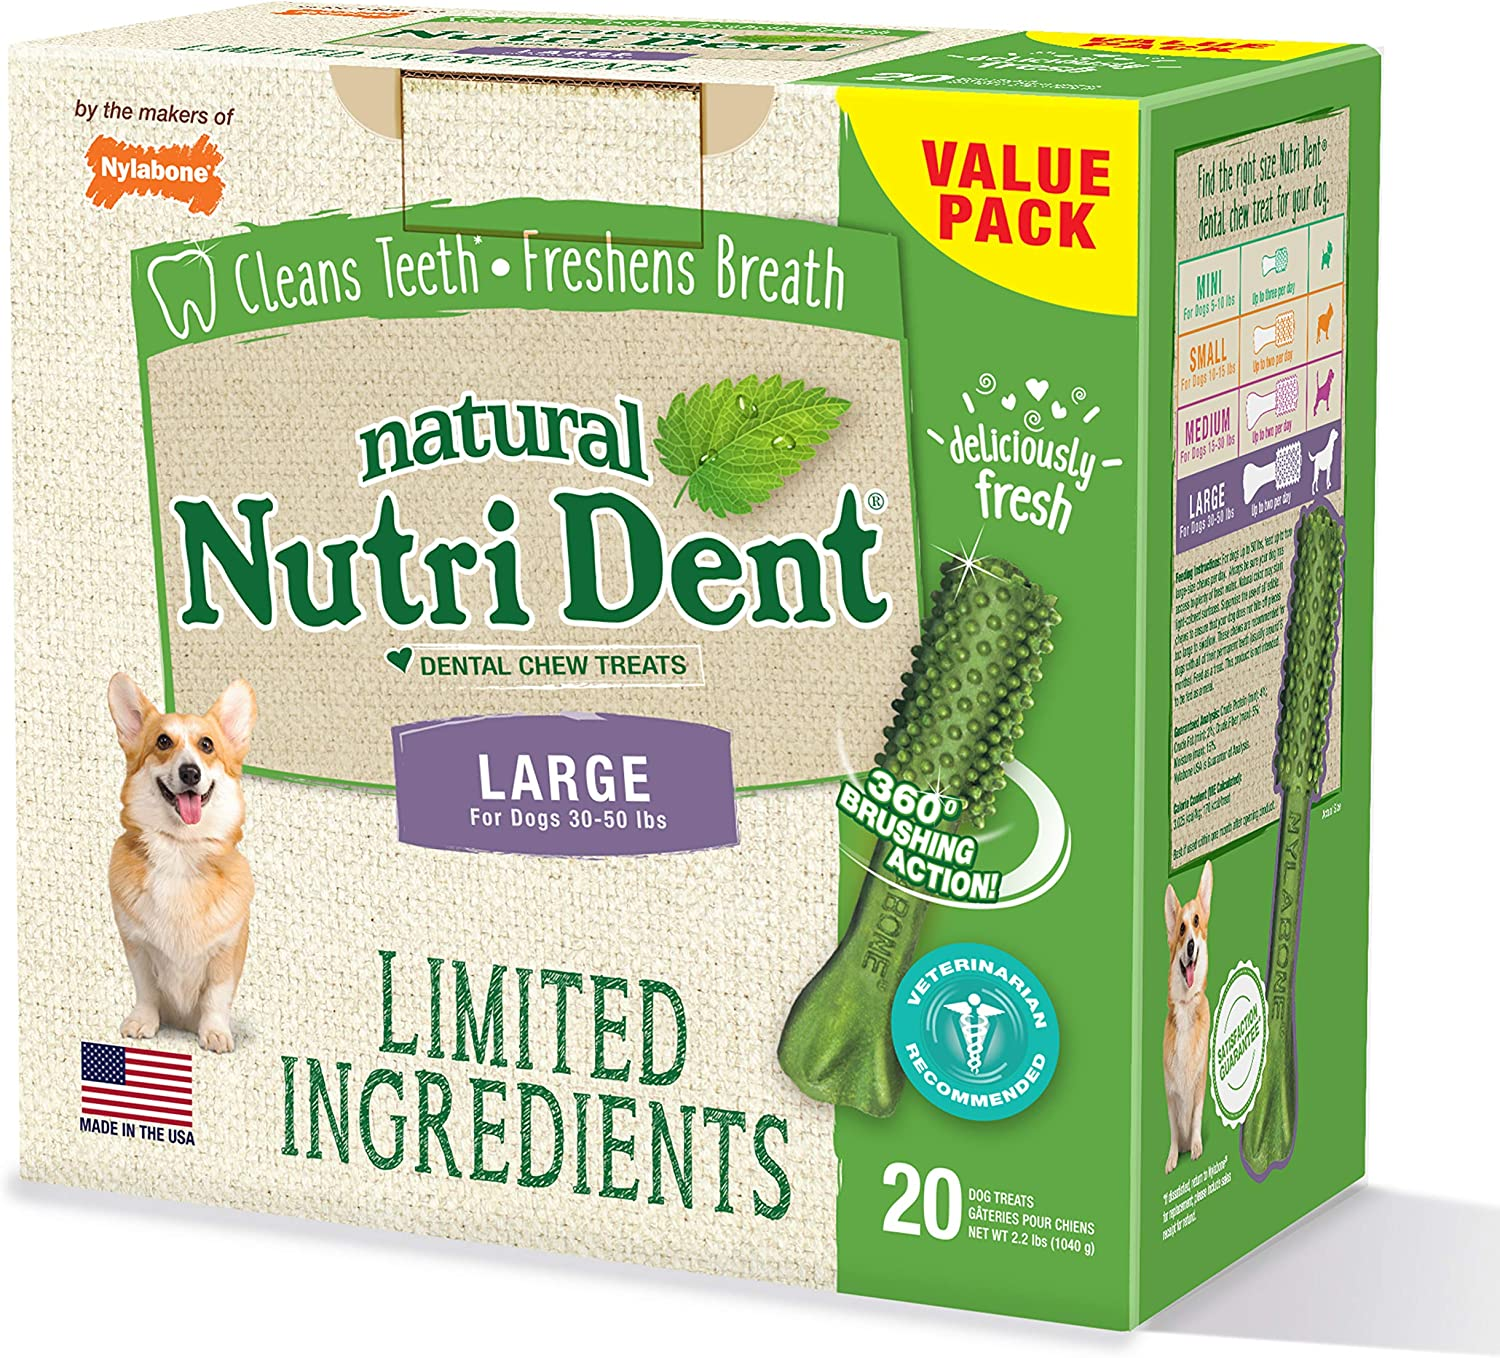 Nutri Dent Limited Ingredient Dental Dog Chews Large Size Filet Mignon or Fresh Breath Flavors